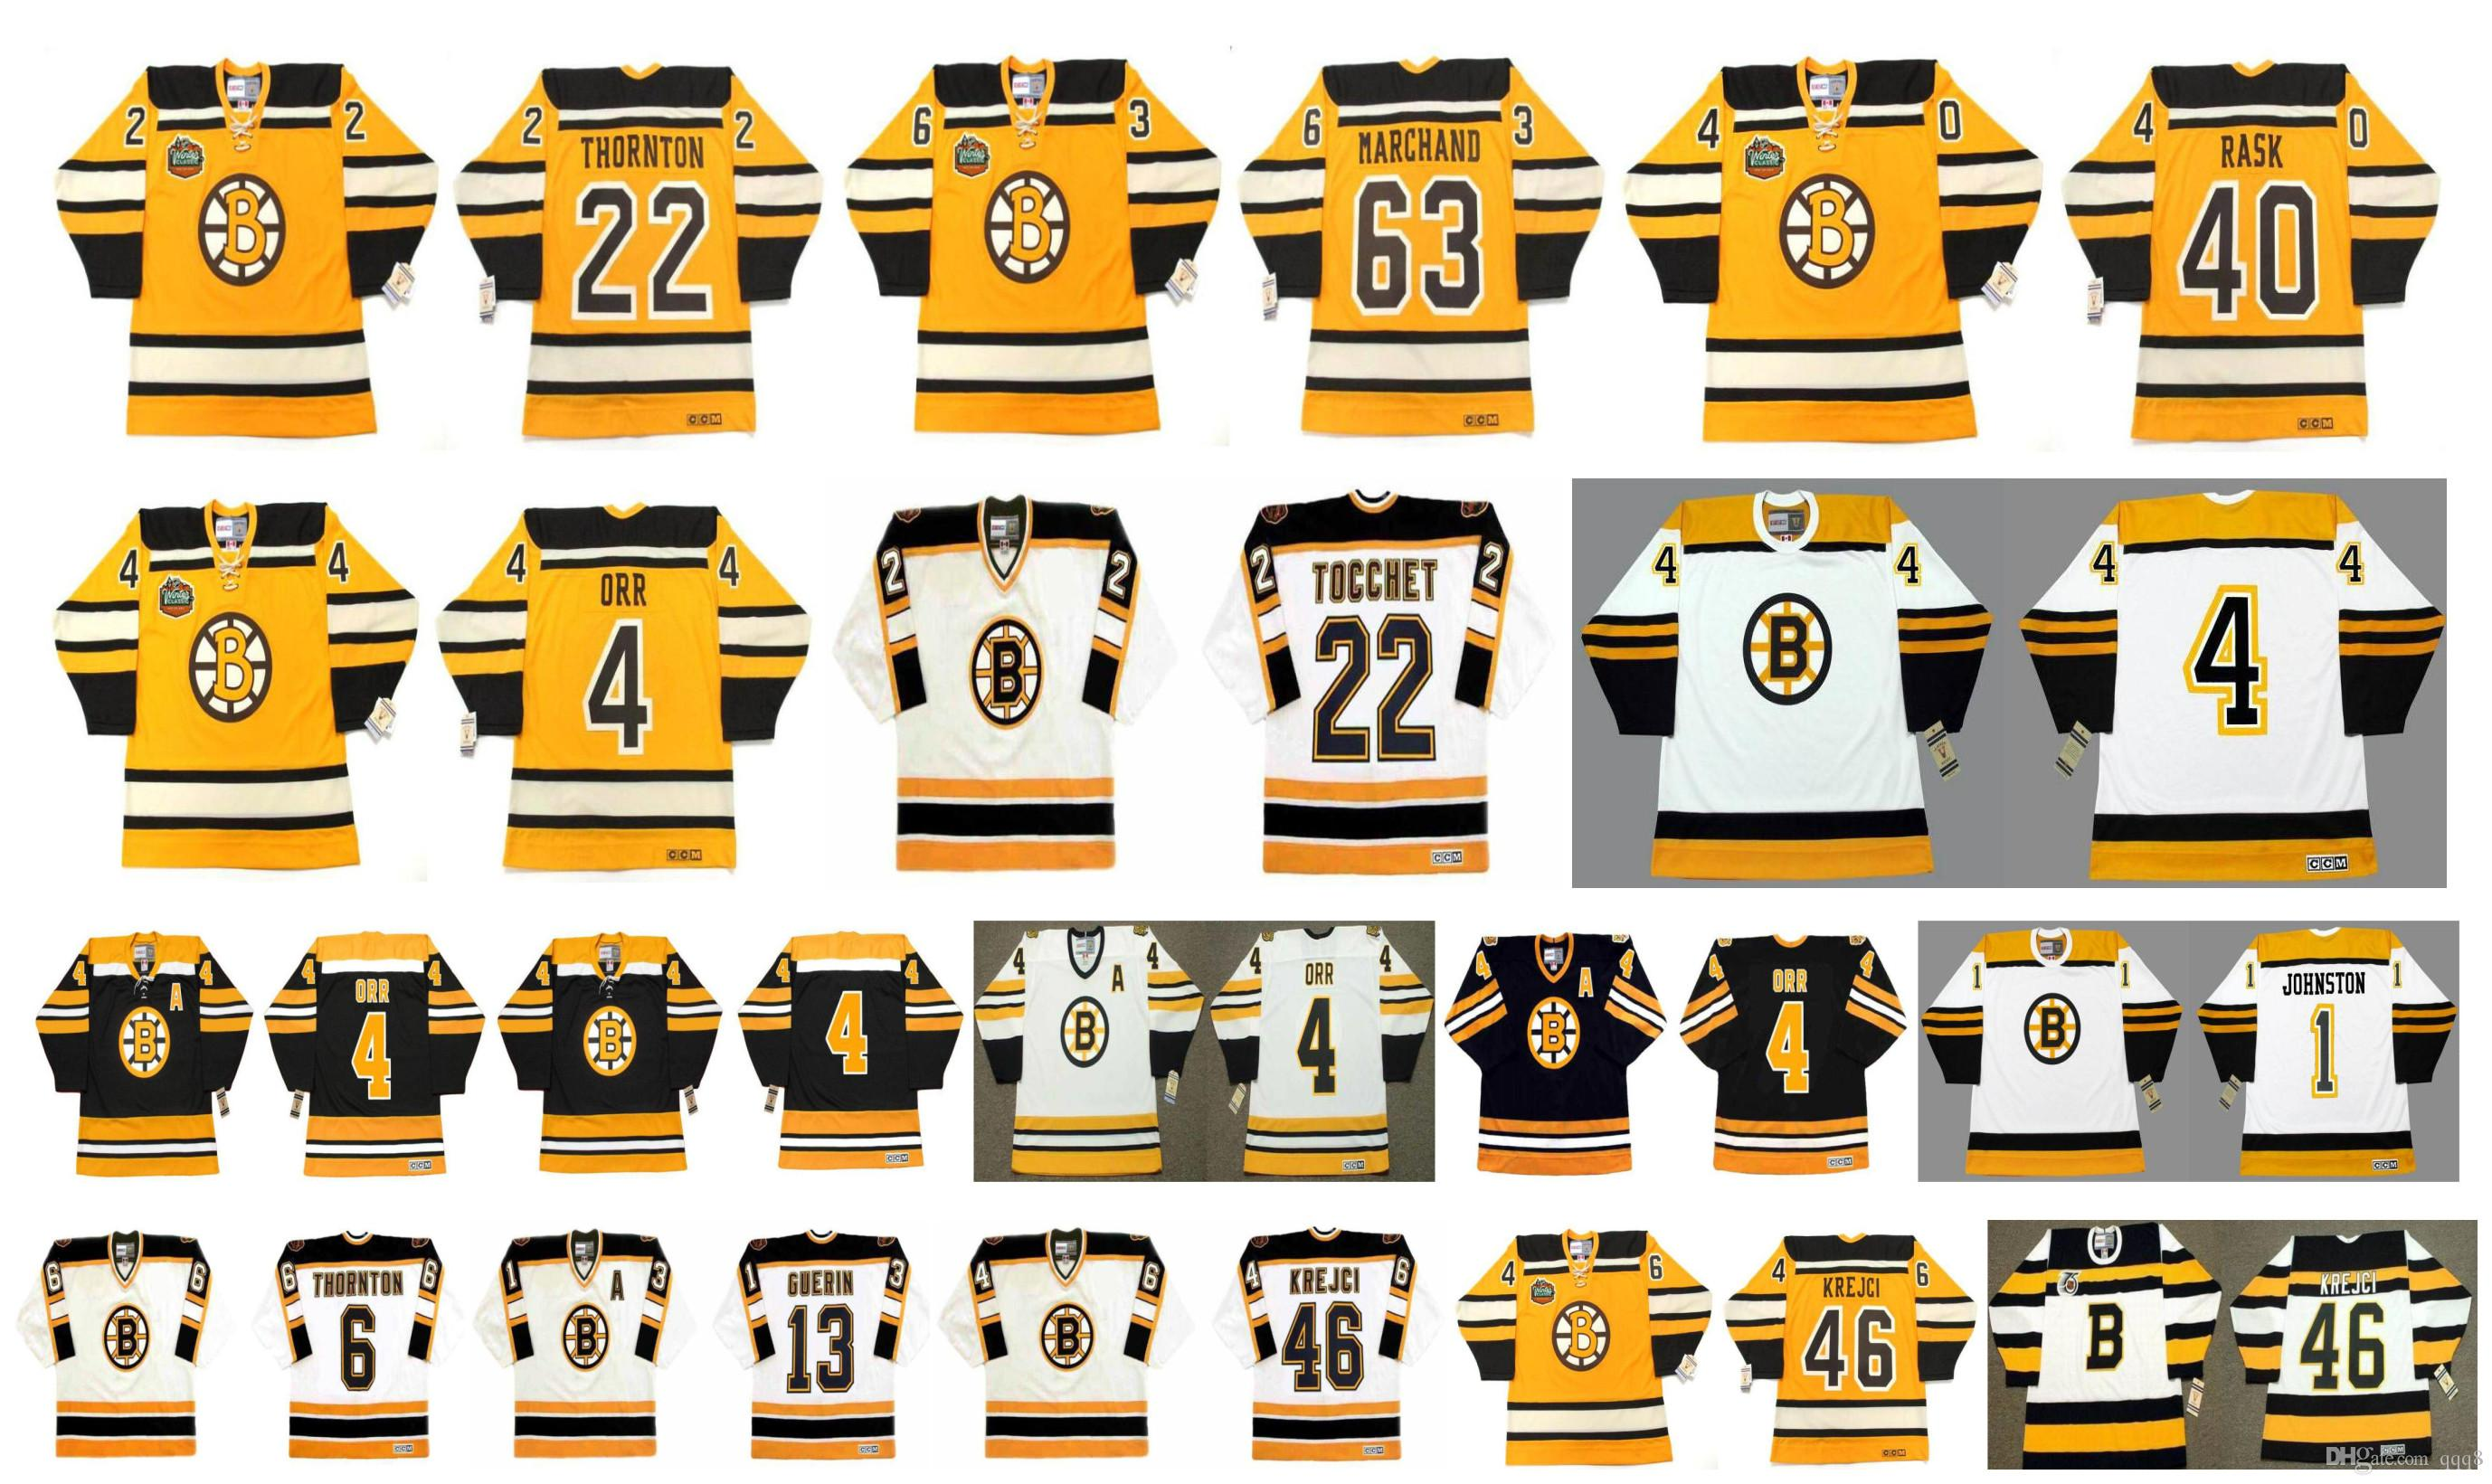 Vintage Boston Bruins Jersey 4 BOBBY ORR 63 Brad Marchand 40 Tuukka Rask 22 RICK TOCCHET 22 Shawn Thornton 1 EDDIE JOHNSTON CCM Retro Hockey